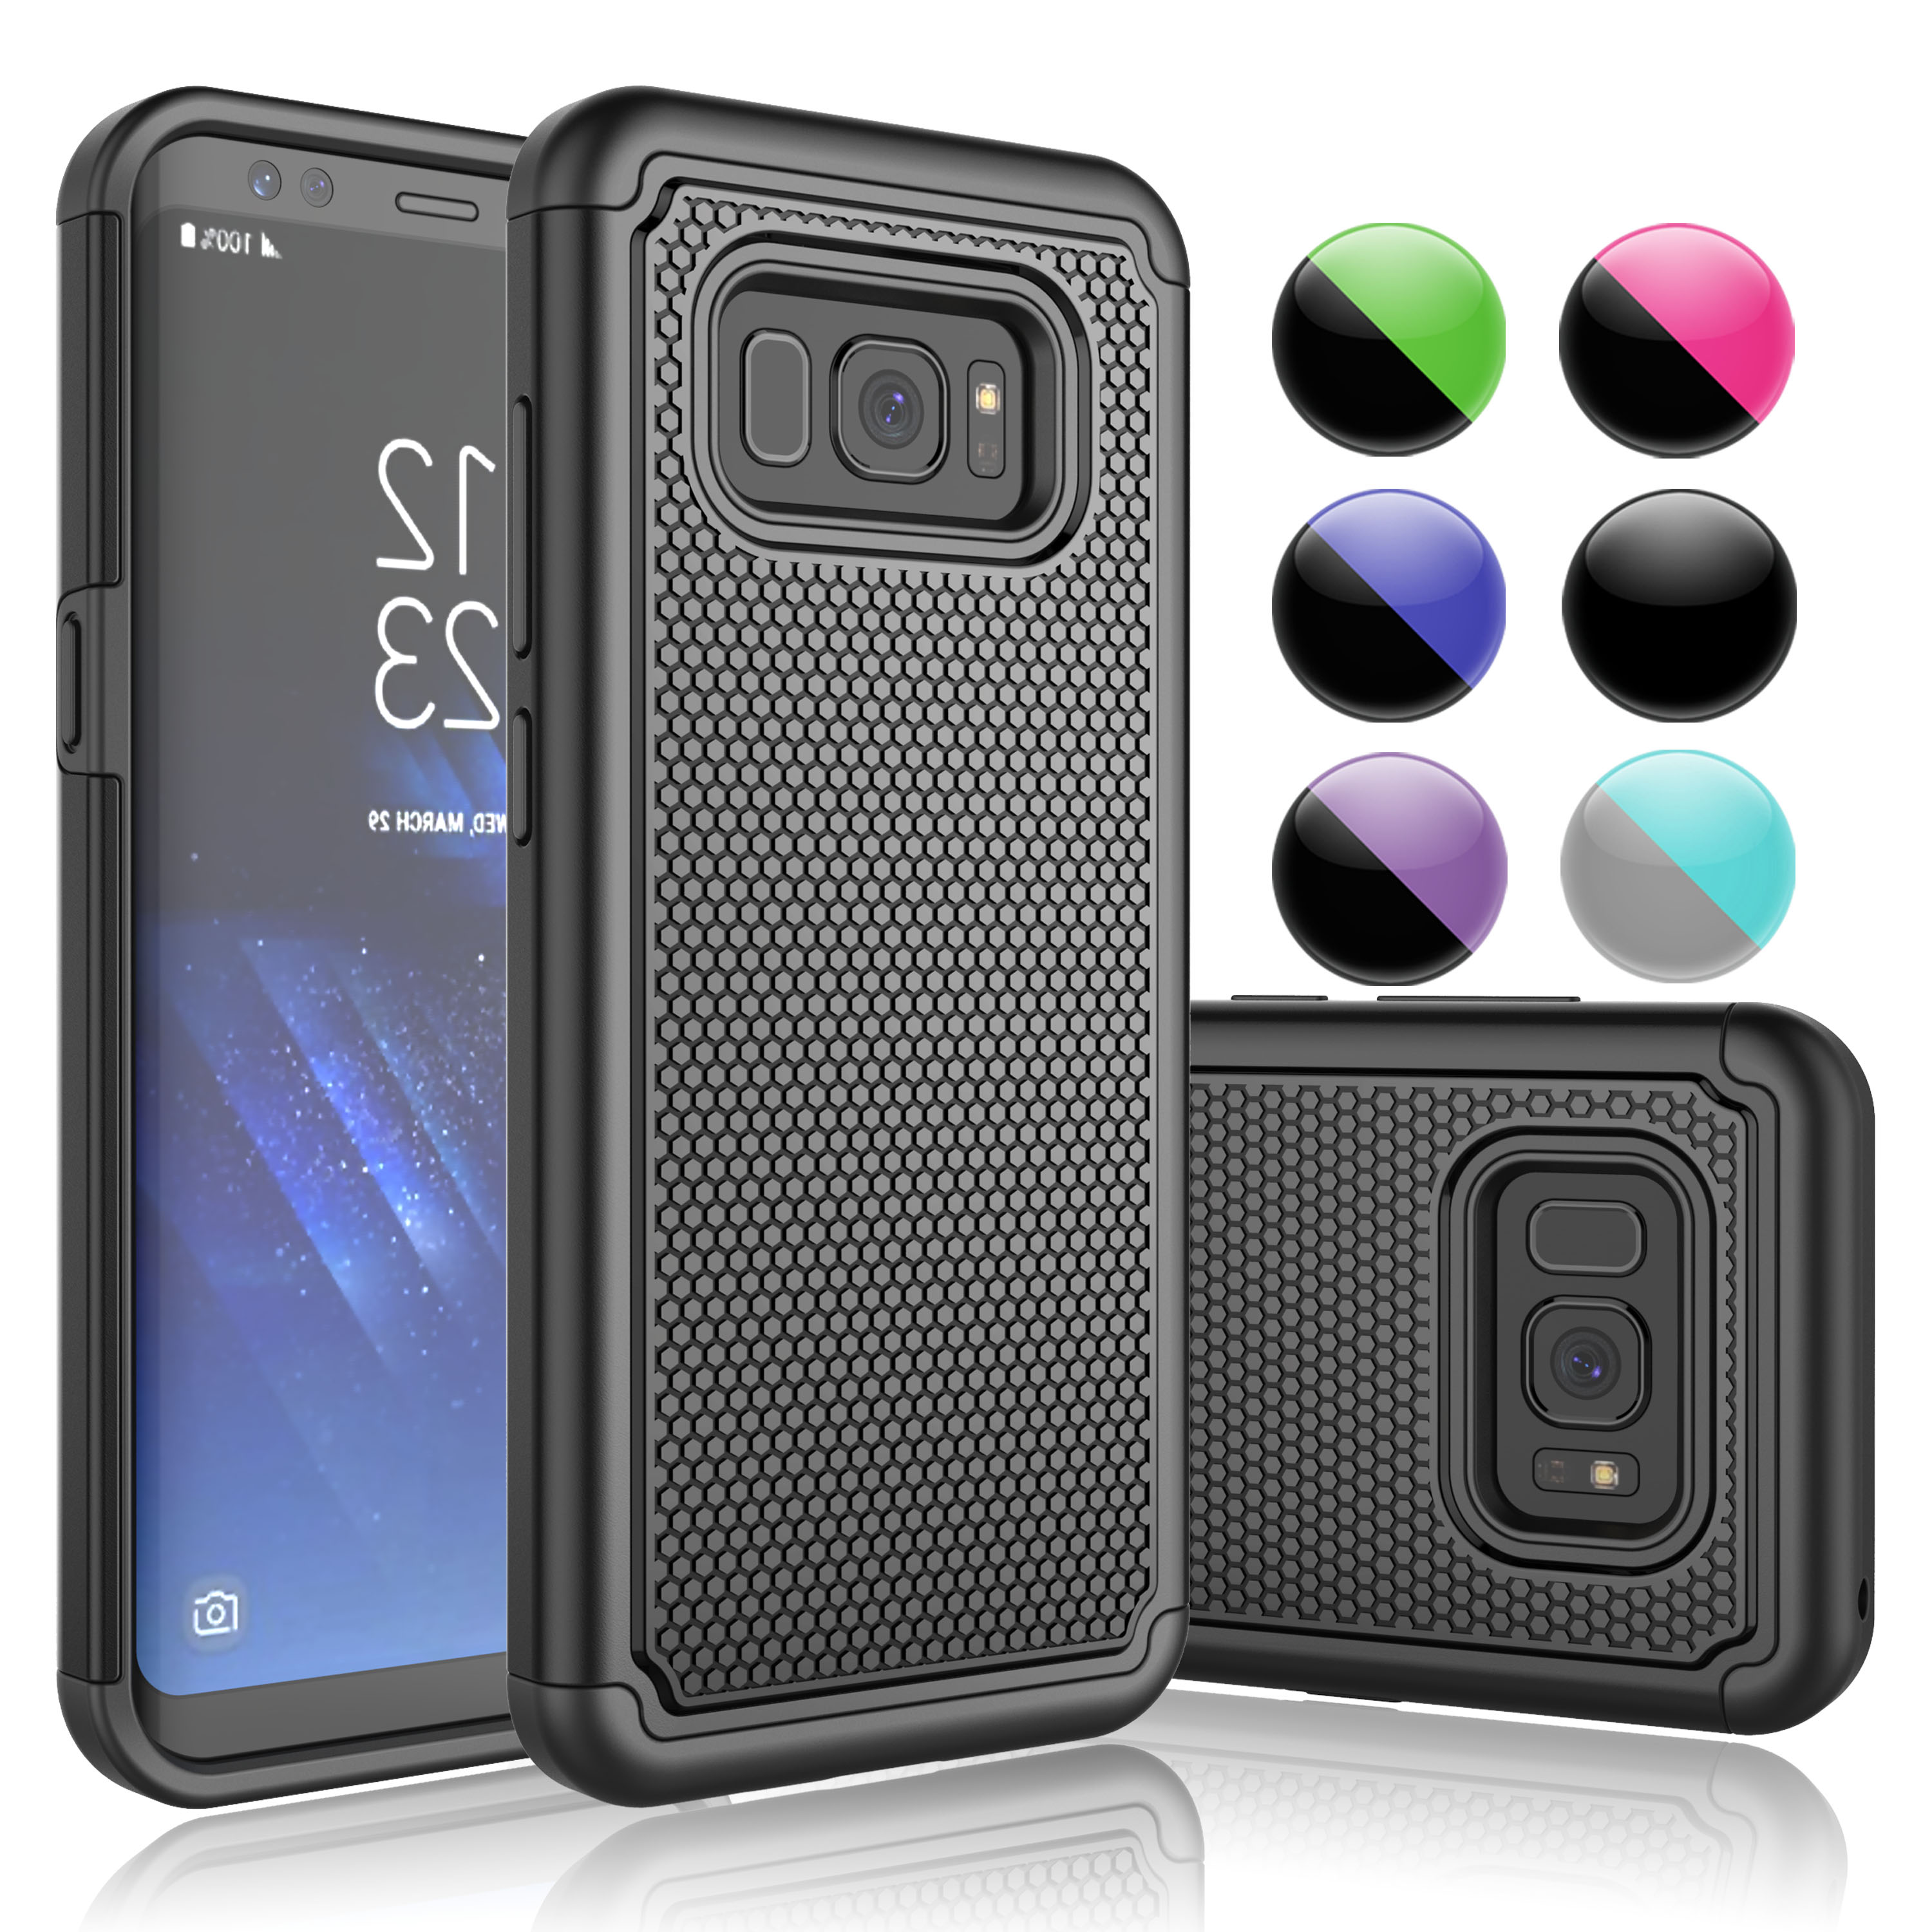 Samsung Galaxy S8 Case, Galaxy S8 Phone Case, Njjex Shock Absorbing Double Layered Plastic Impact Defender Hard Case Cover Shell For Samsung Galaxy S8 (2017)-Purple